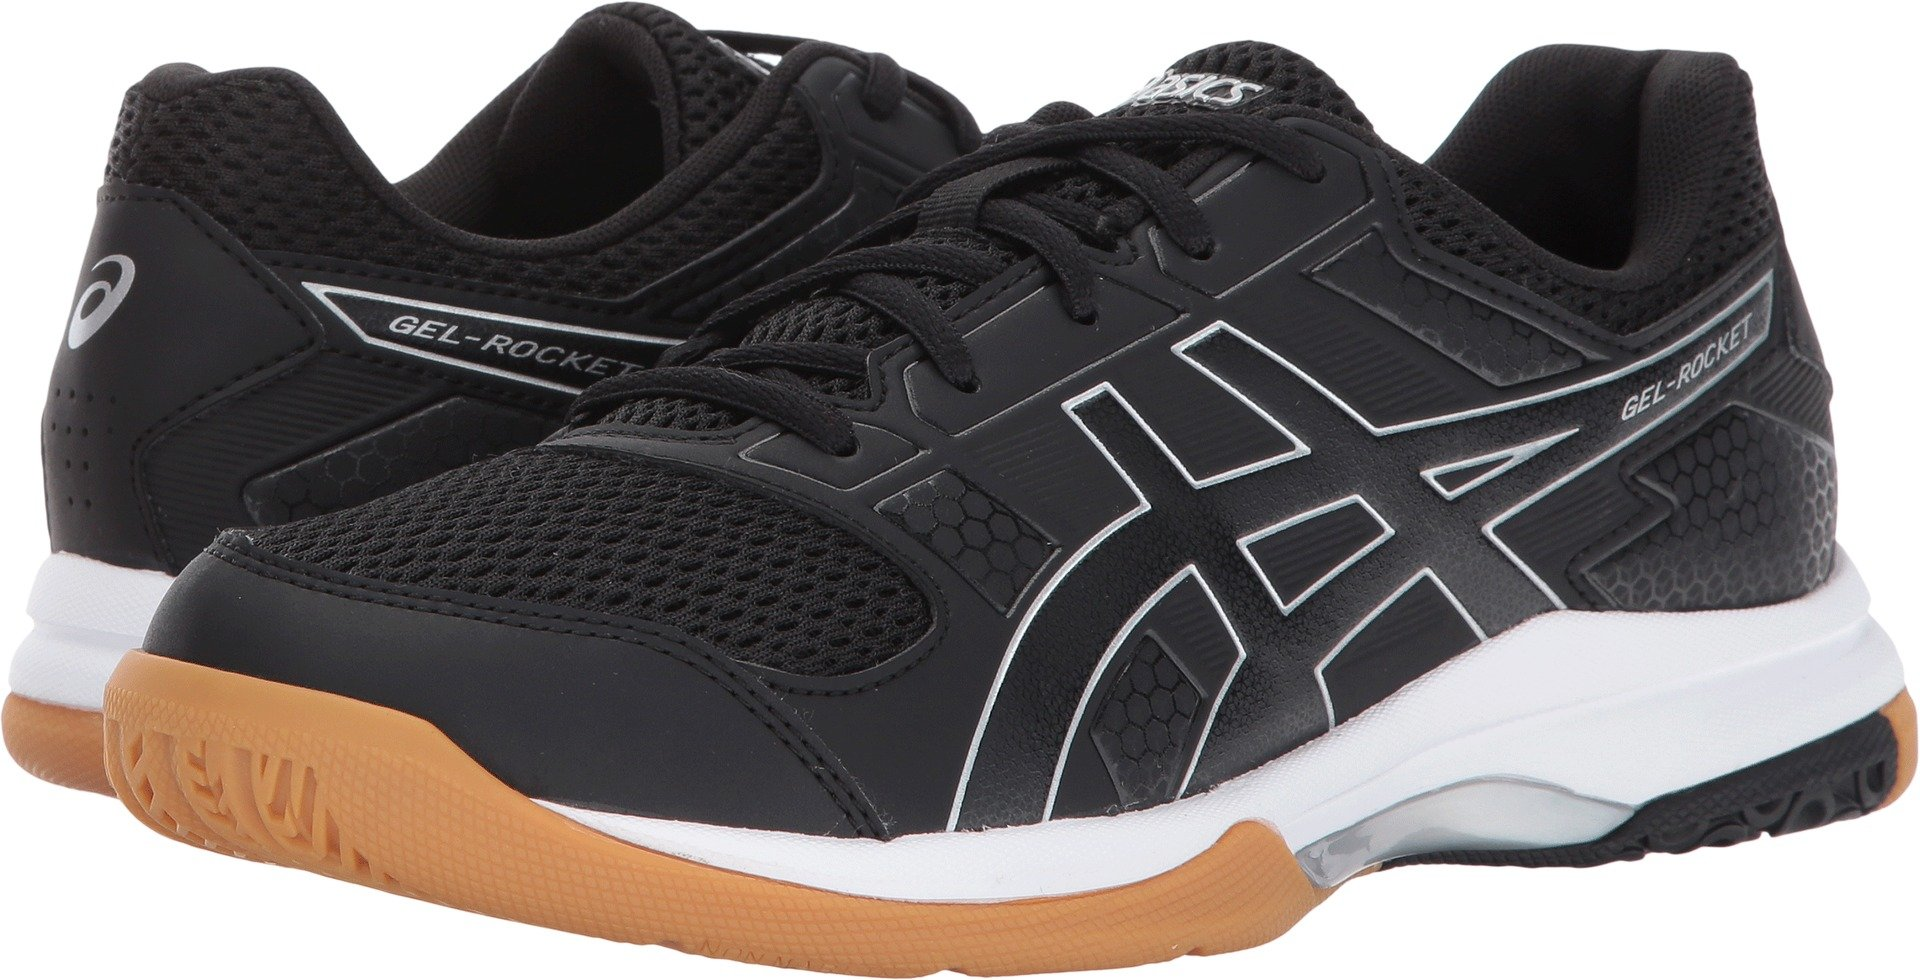 ASICS Women's Gel-Rocket 8 Volleyball Shoe, Black/Black/White, 7 Medium US